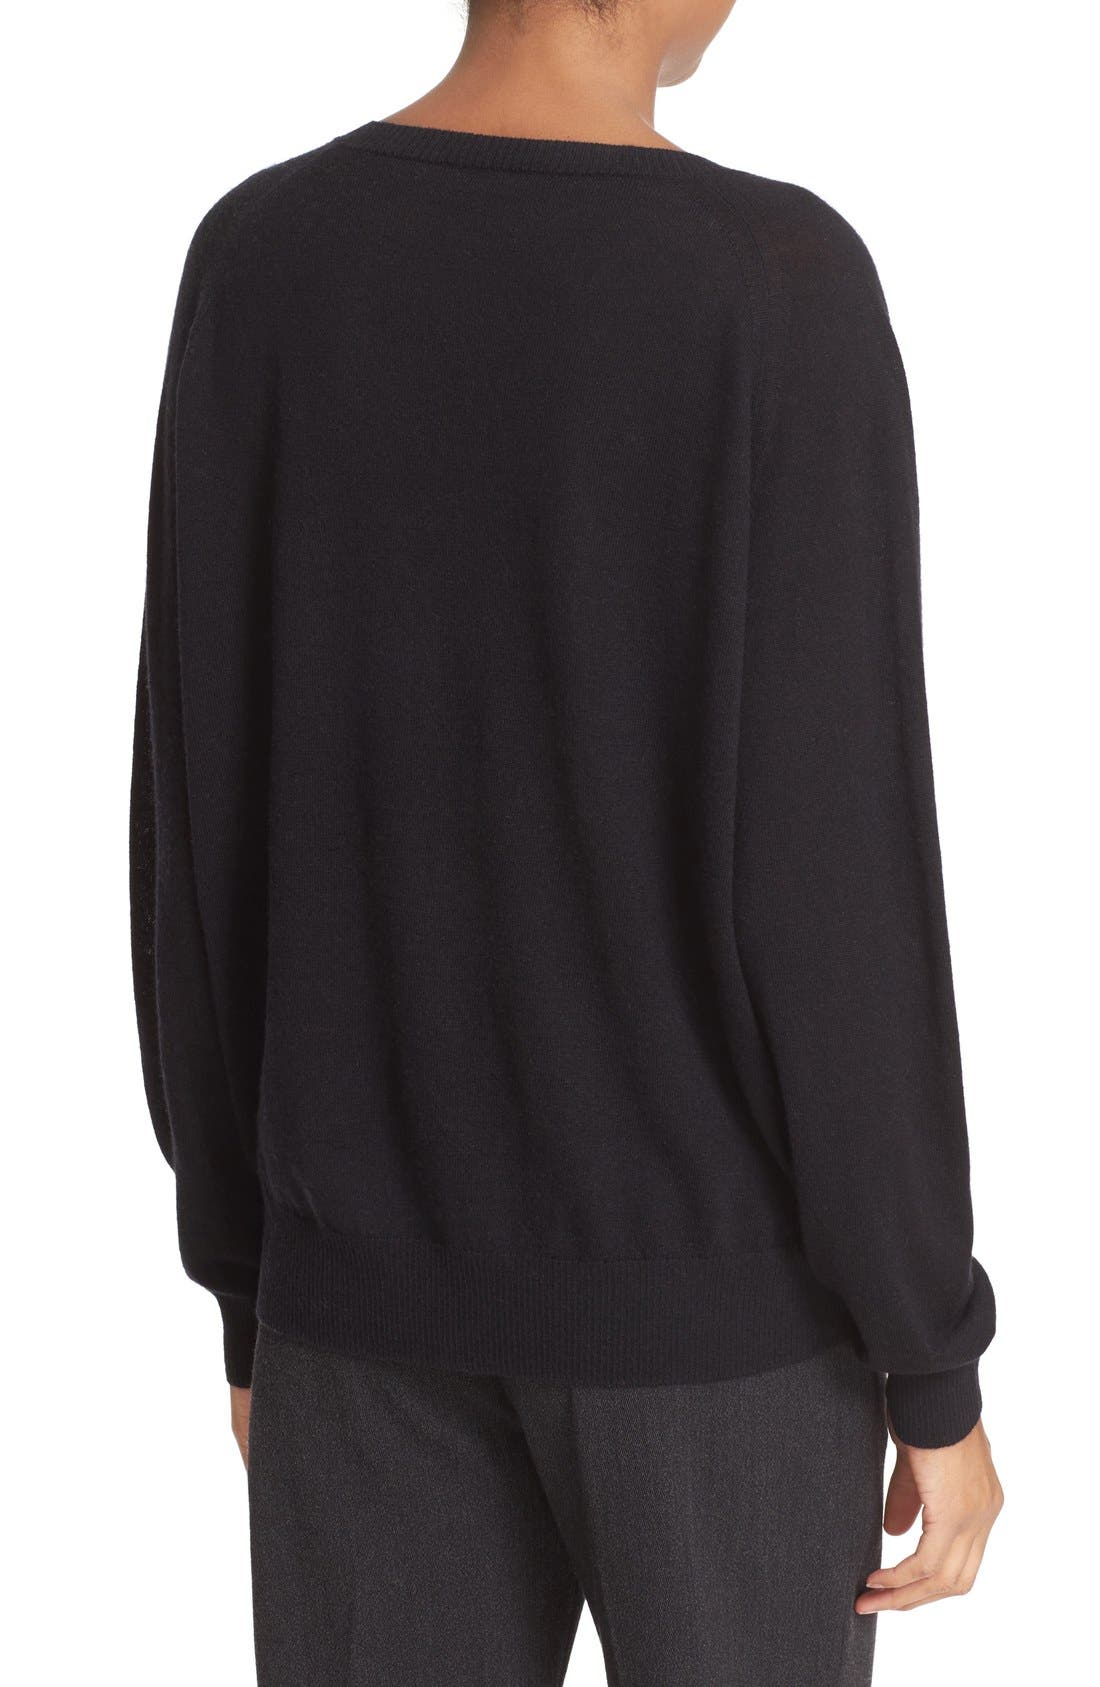 VINCE, Relaxed Cashmere V-Neck Sweater, Alternate thumbnail 4, color, 001